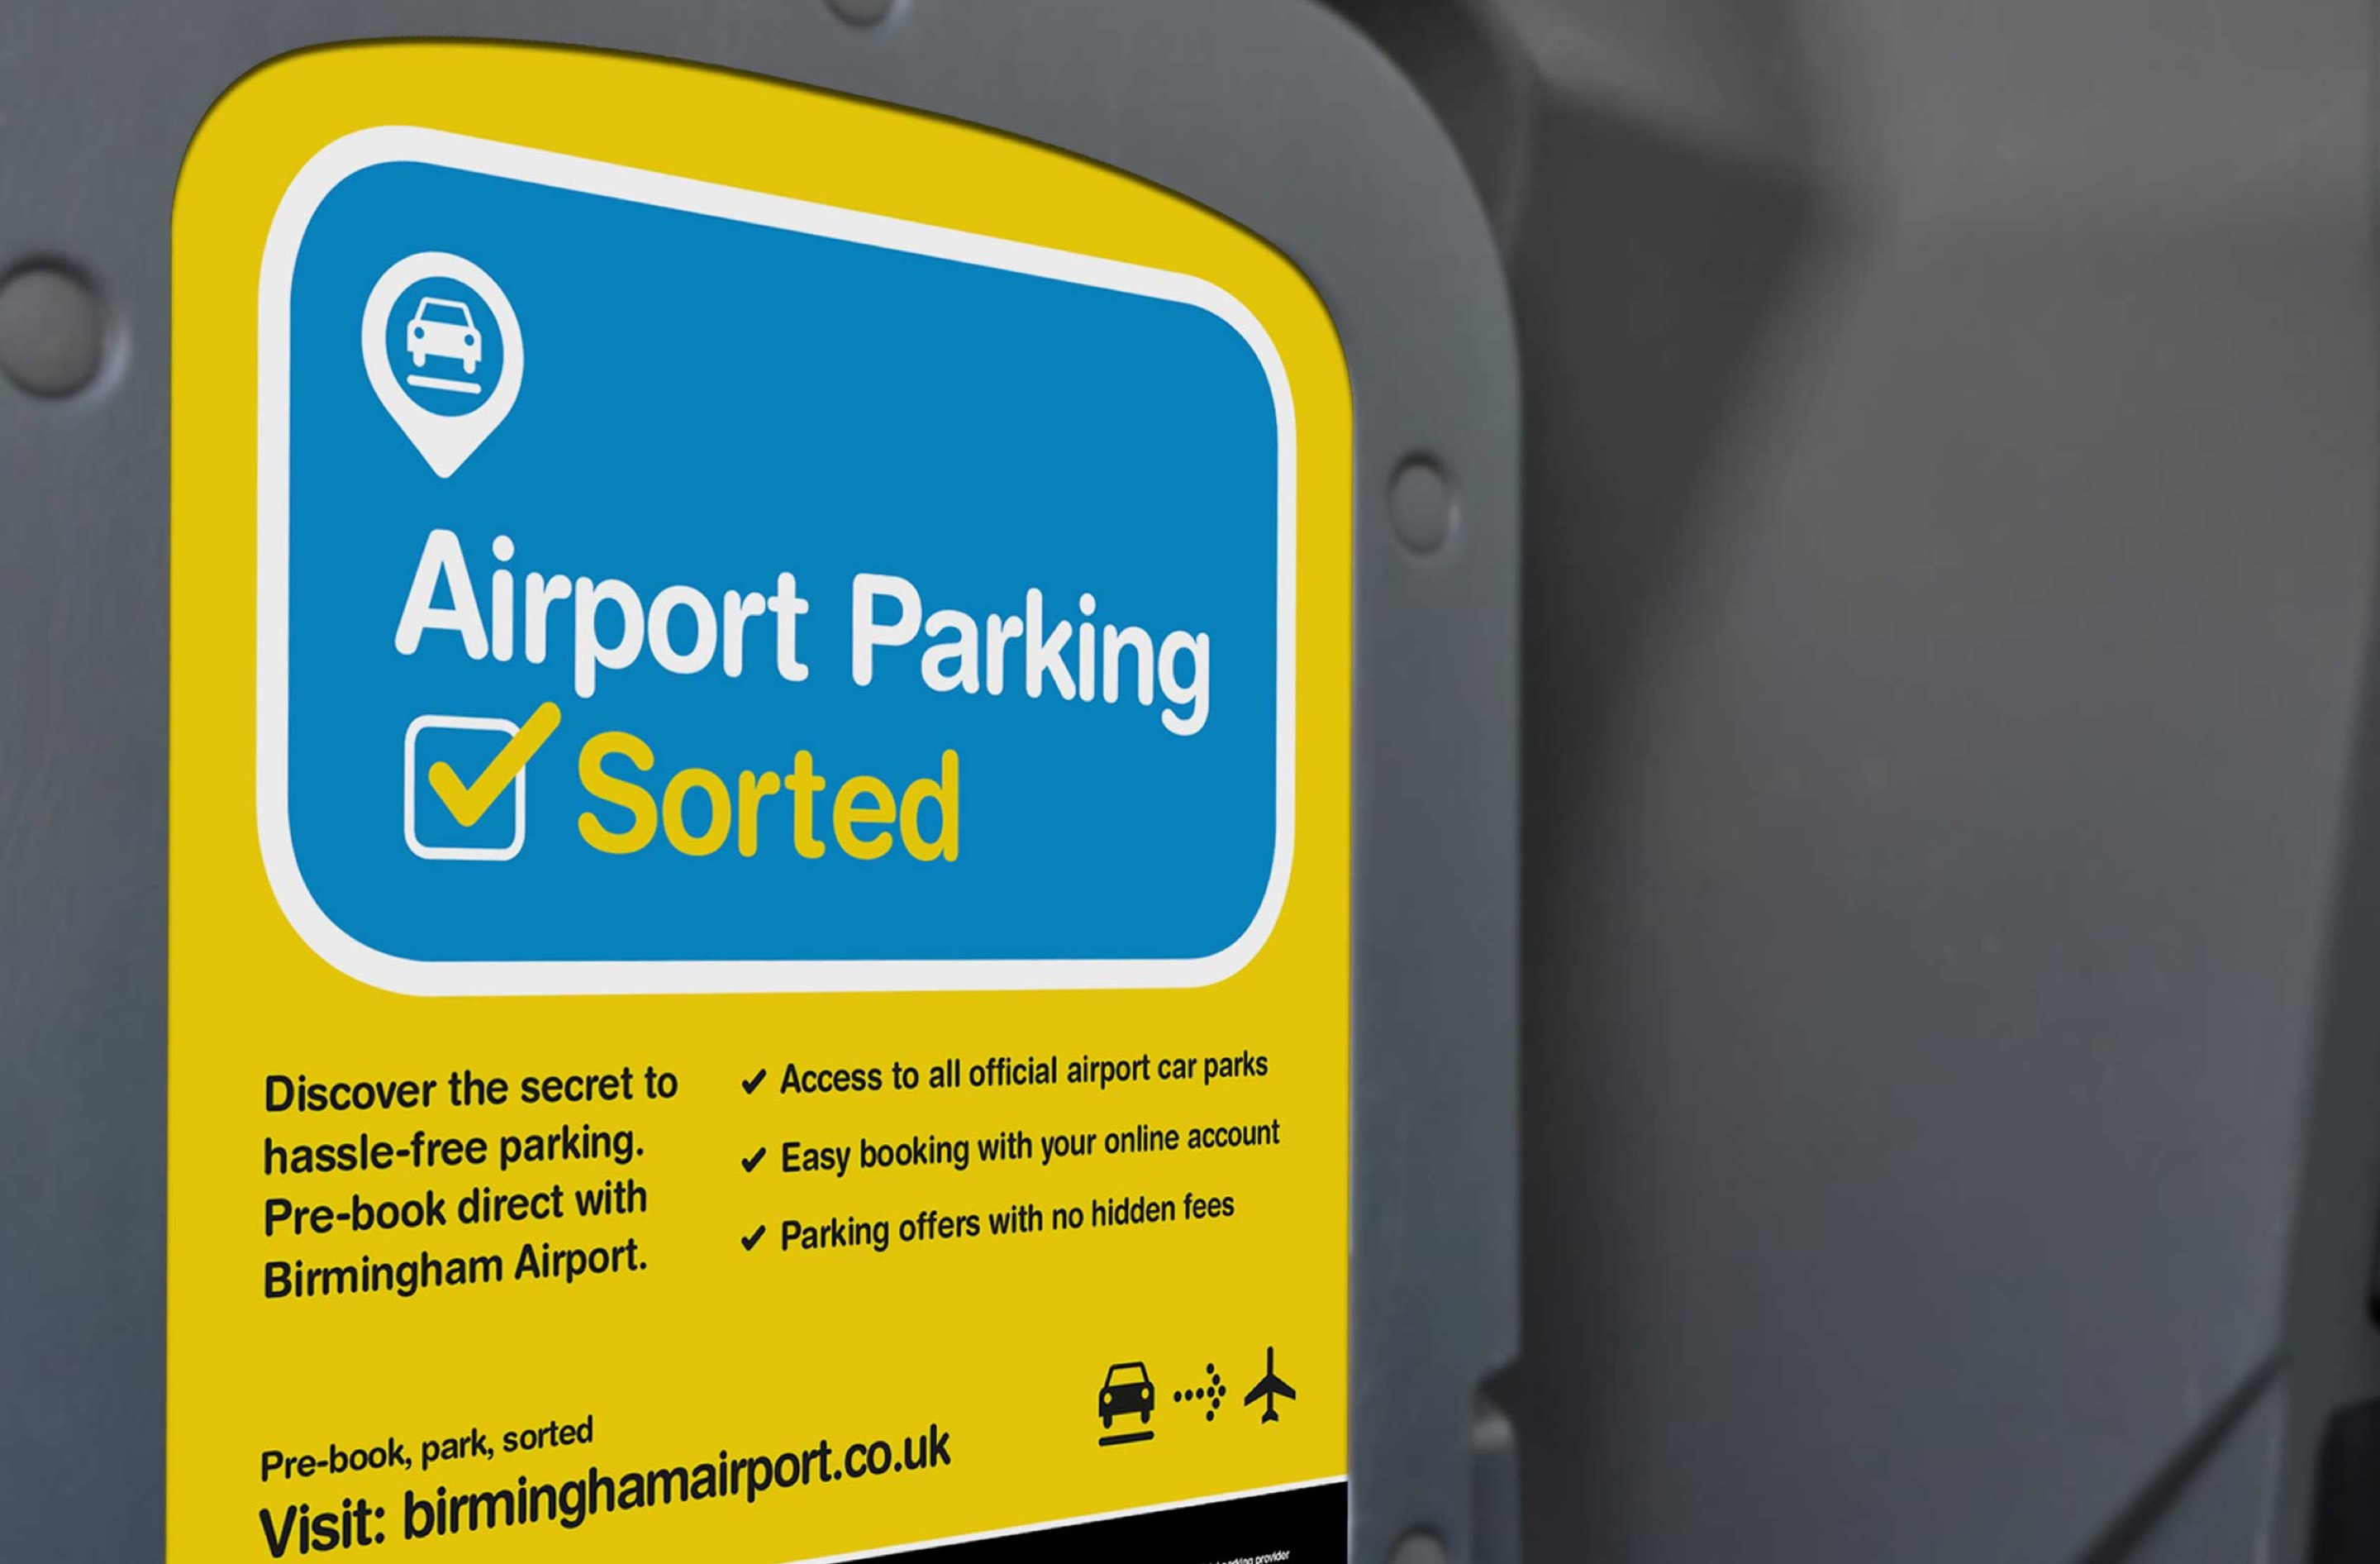 We also created in-seat promotion designs to feature inside the taxis